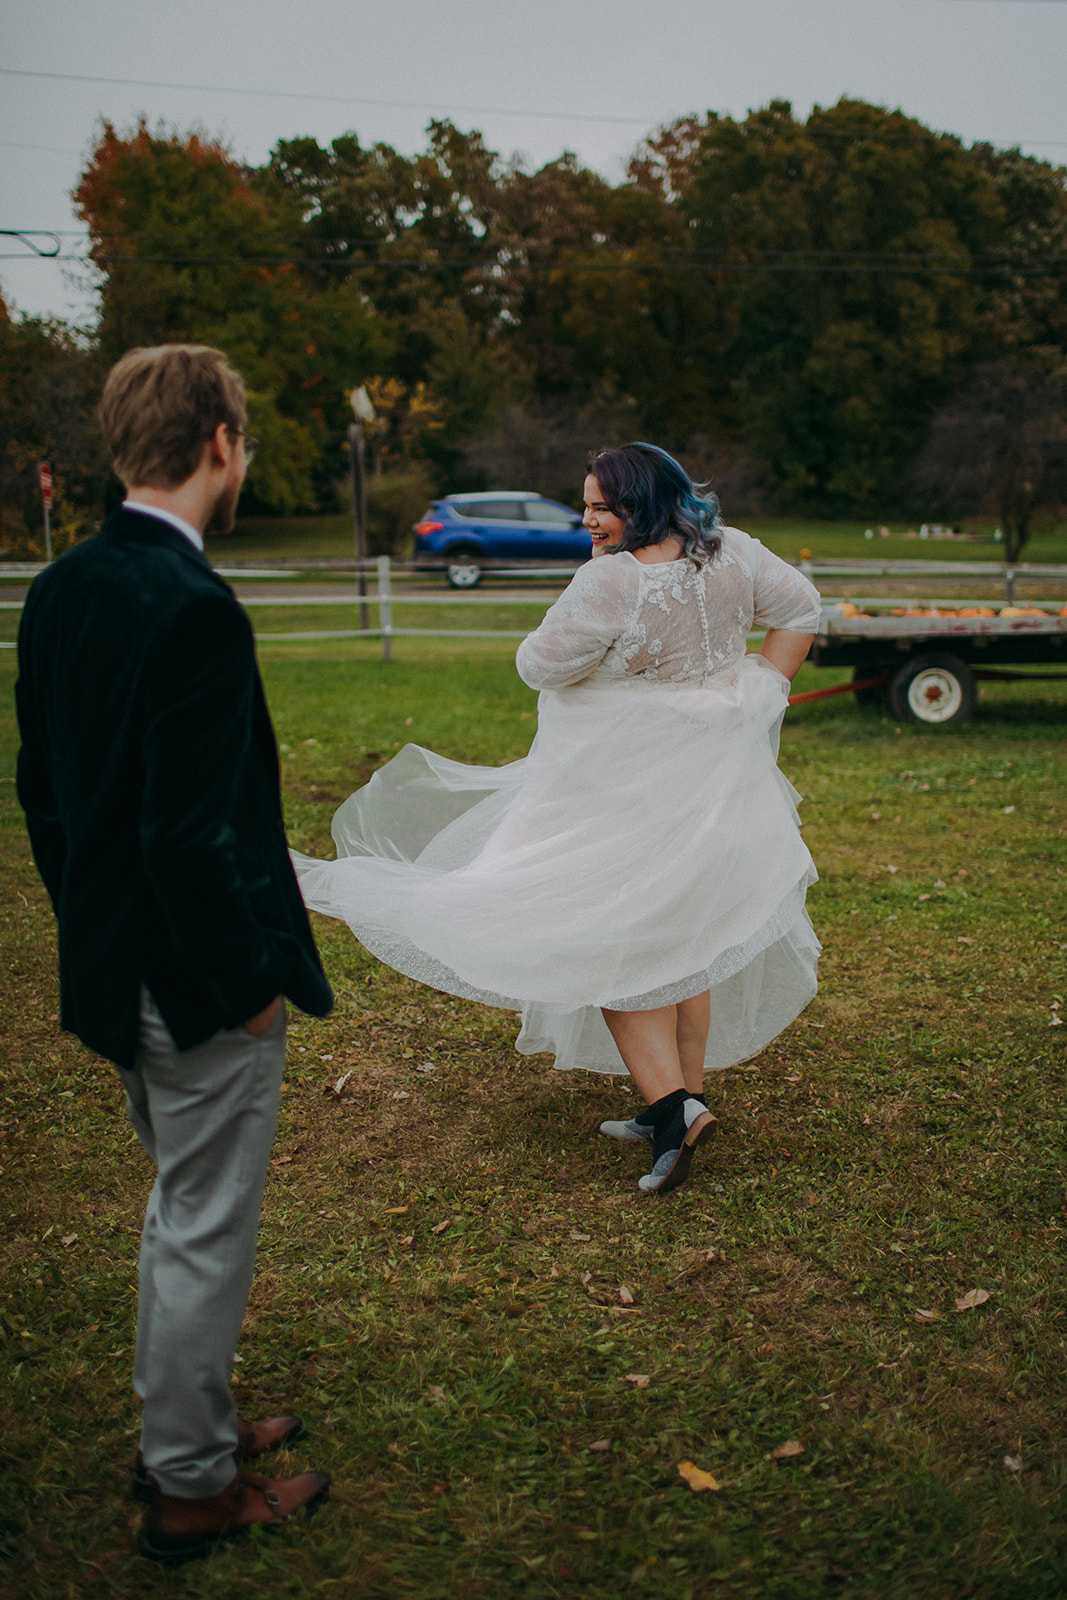 A bride twirls in her dress for her groom during a wisconsin wedding